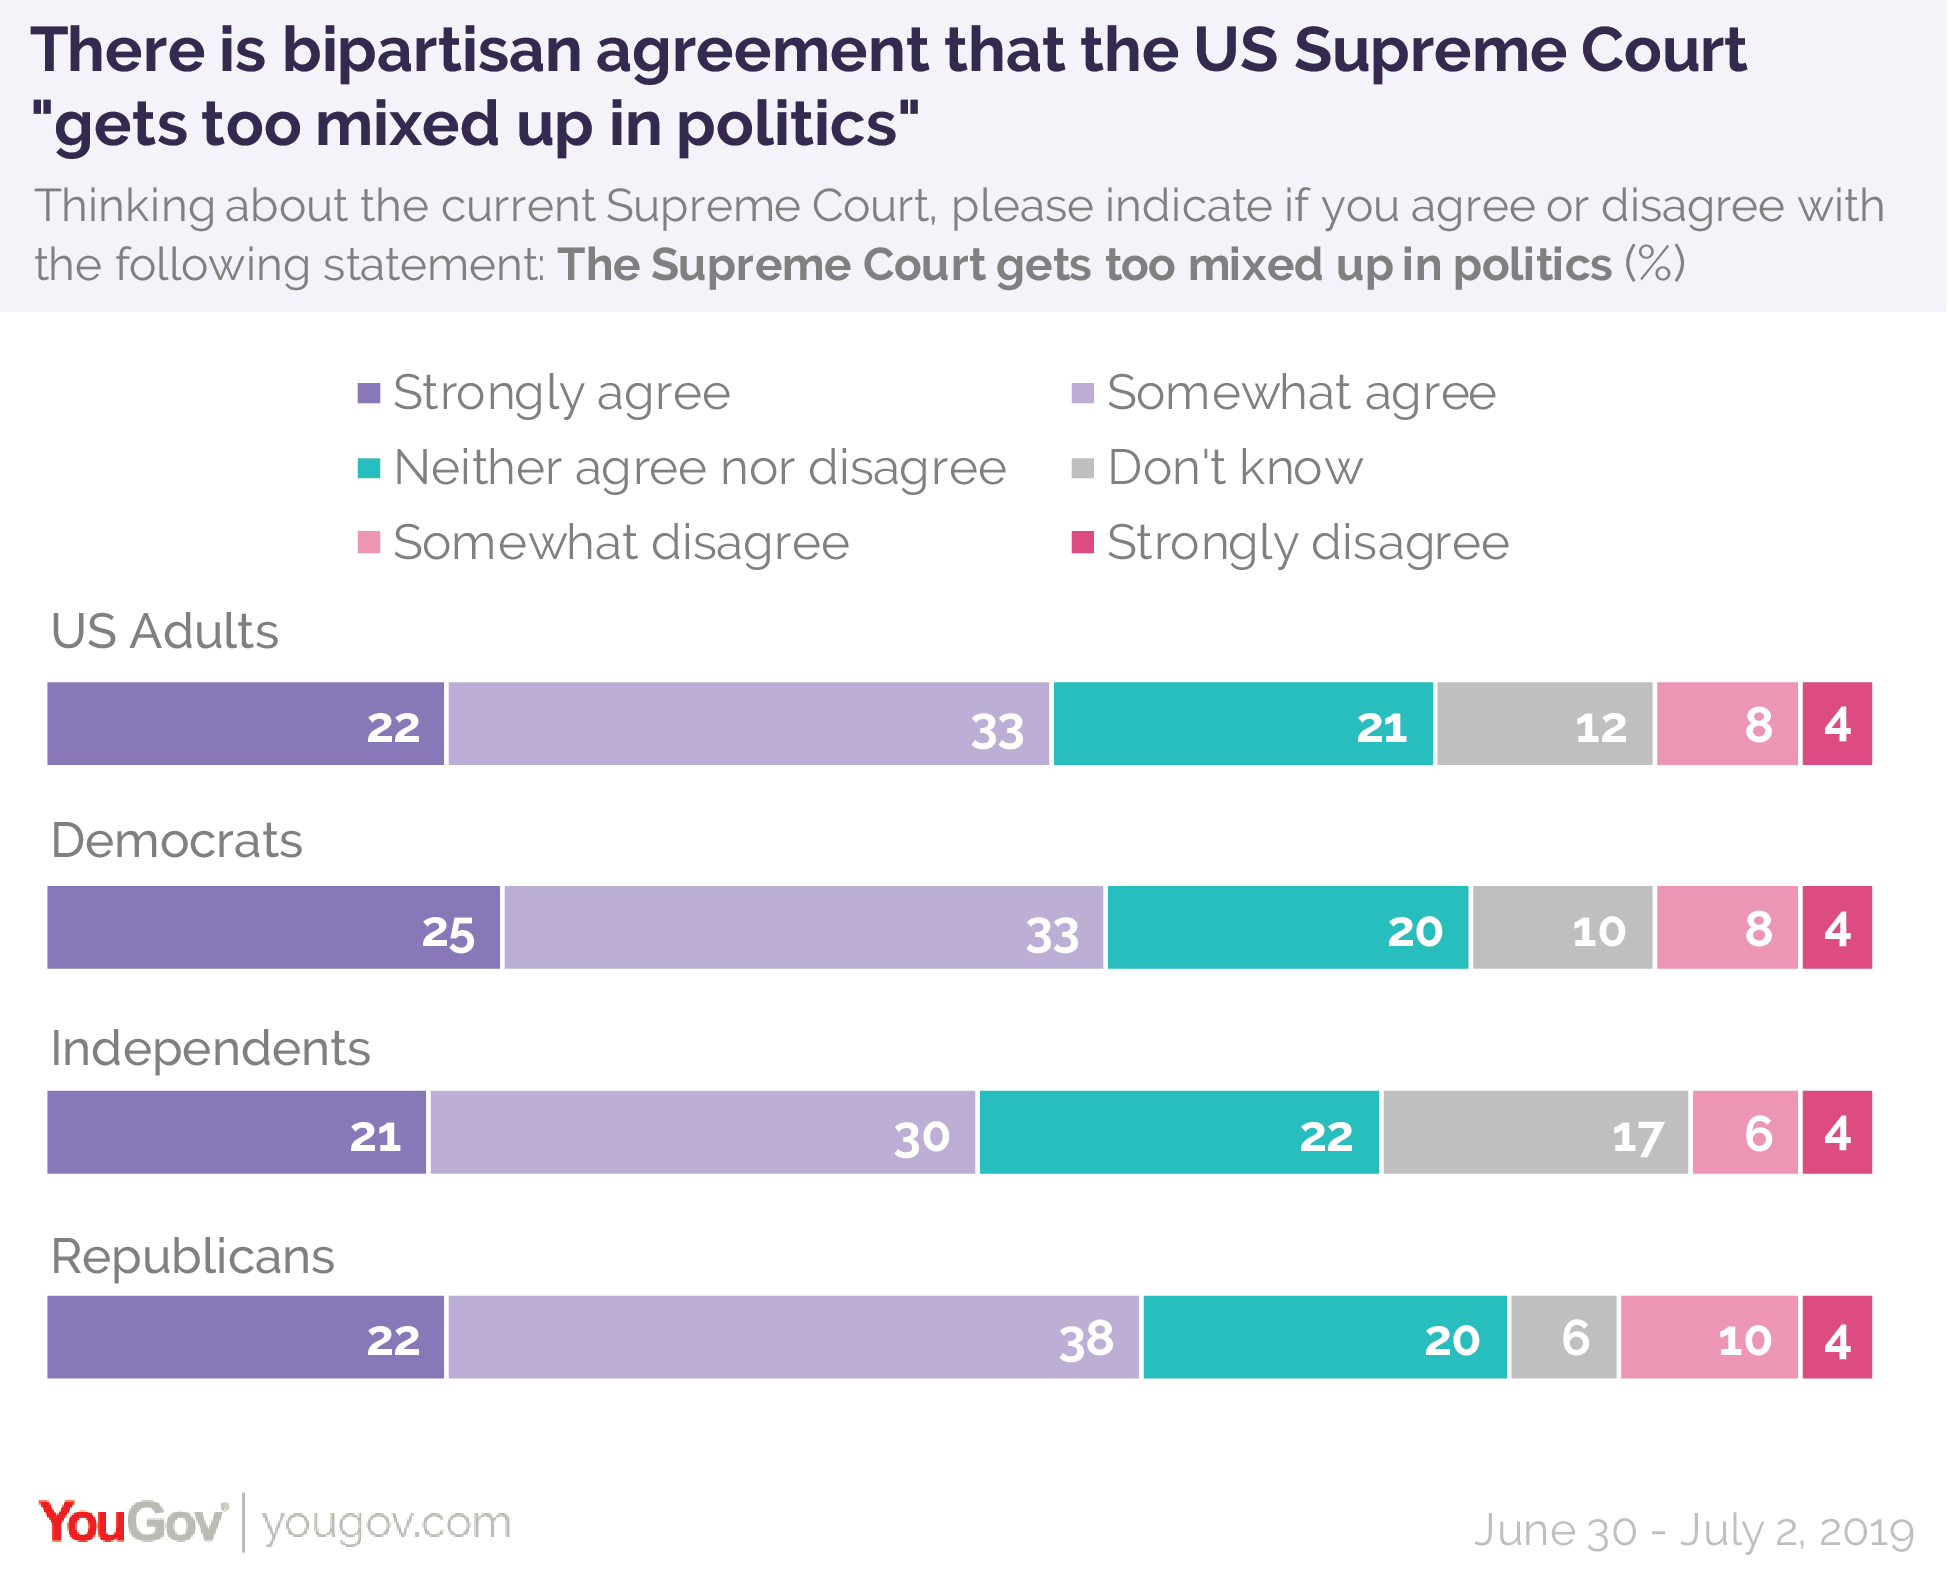 There is bipartisan agreement that the US Supreme Court gets too mixed up in politics